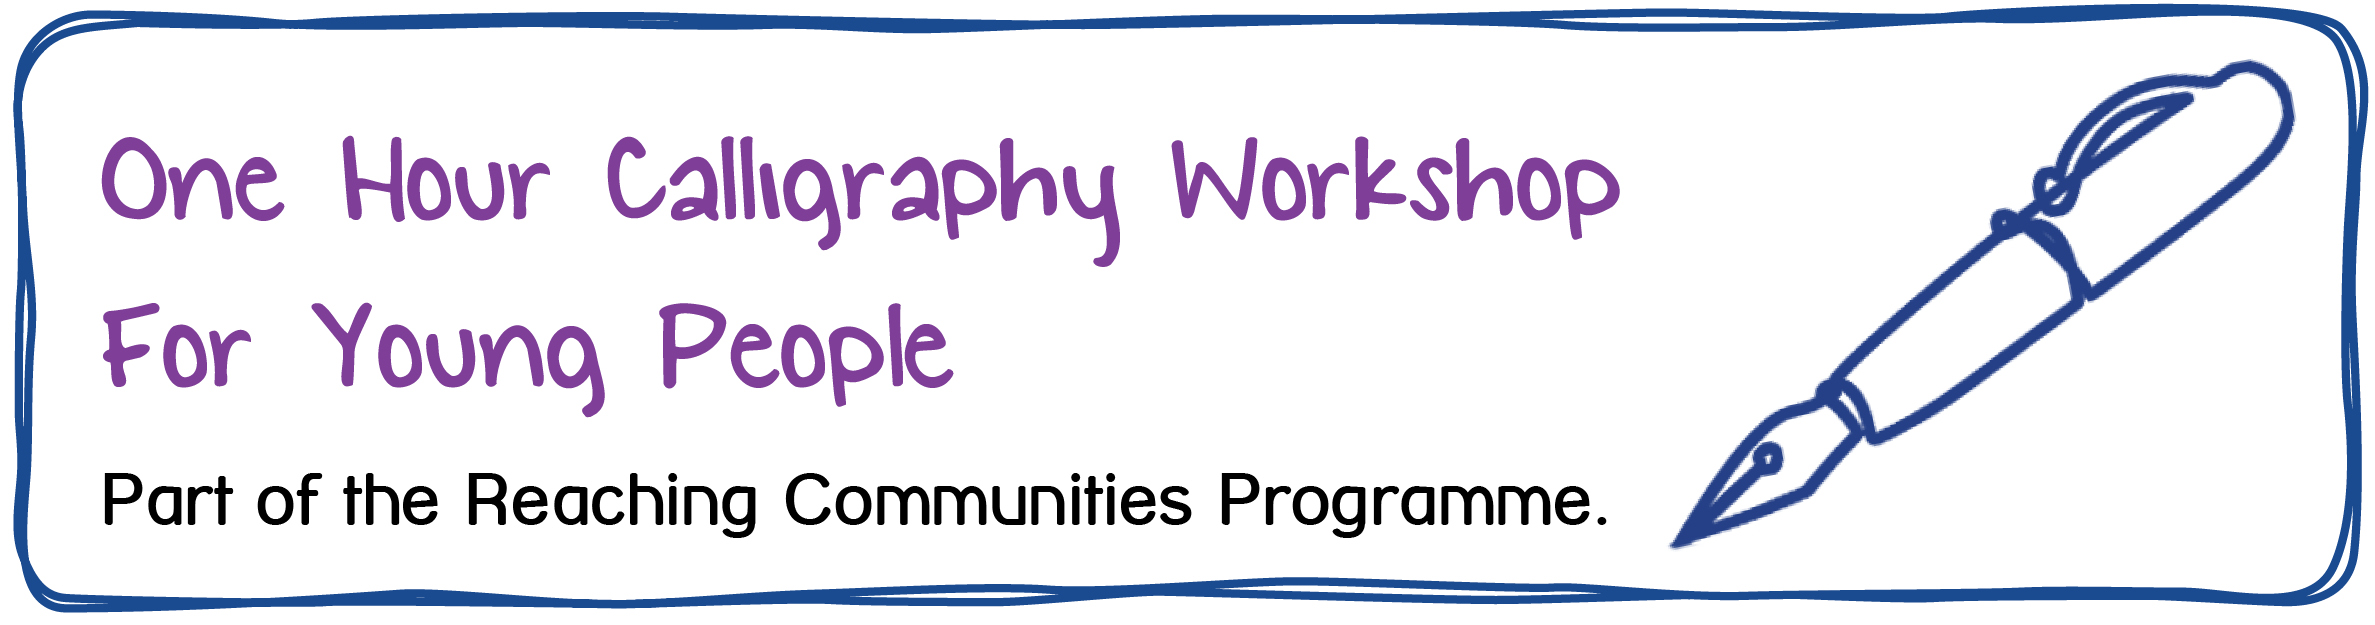 One Hour Calligraphy Workshop For Young People. Part of the Reaching Communities Programme.